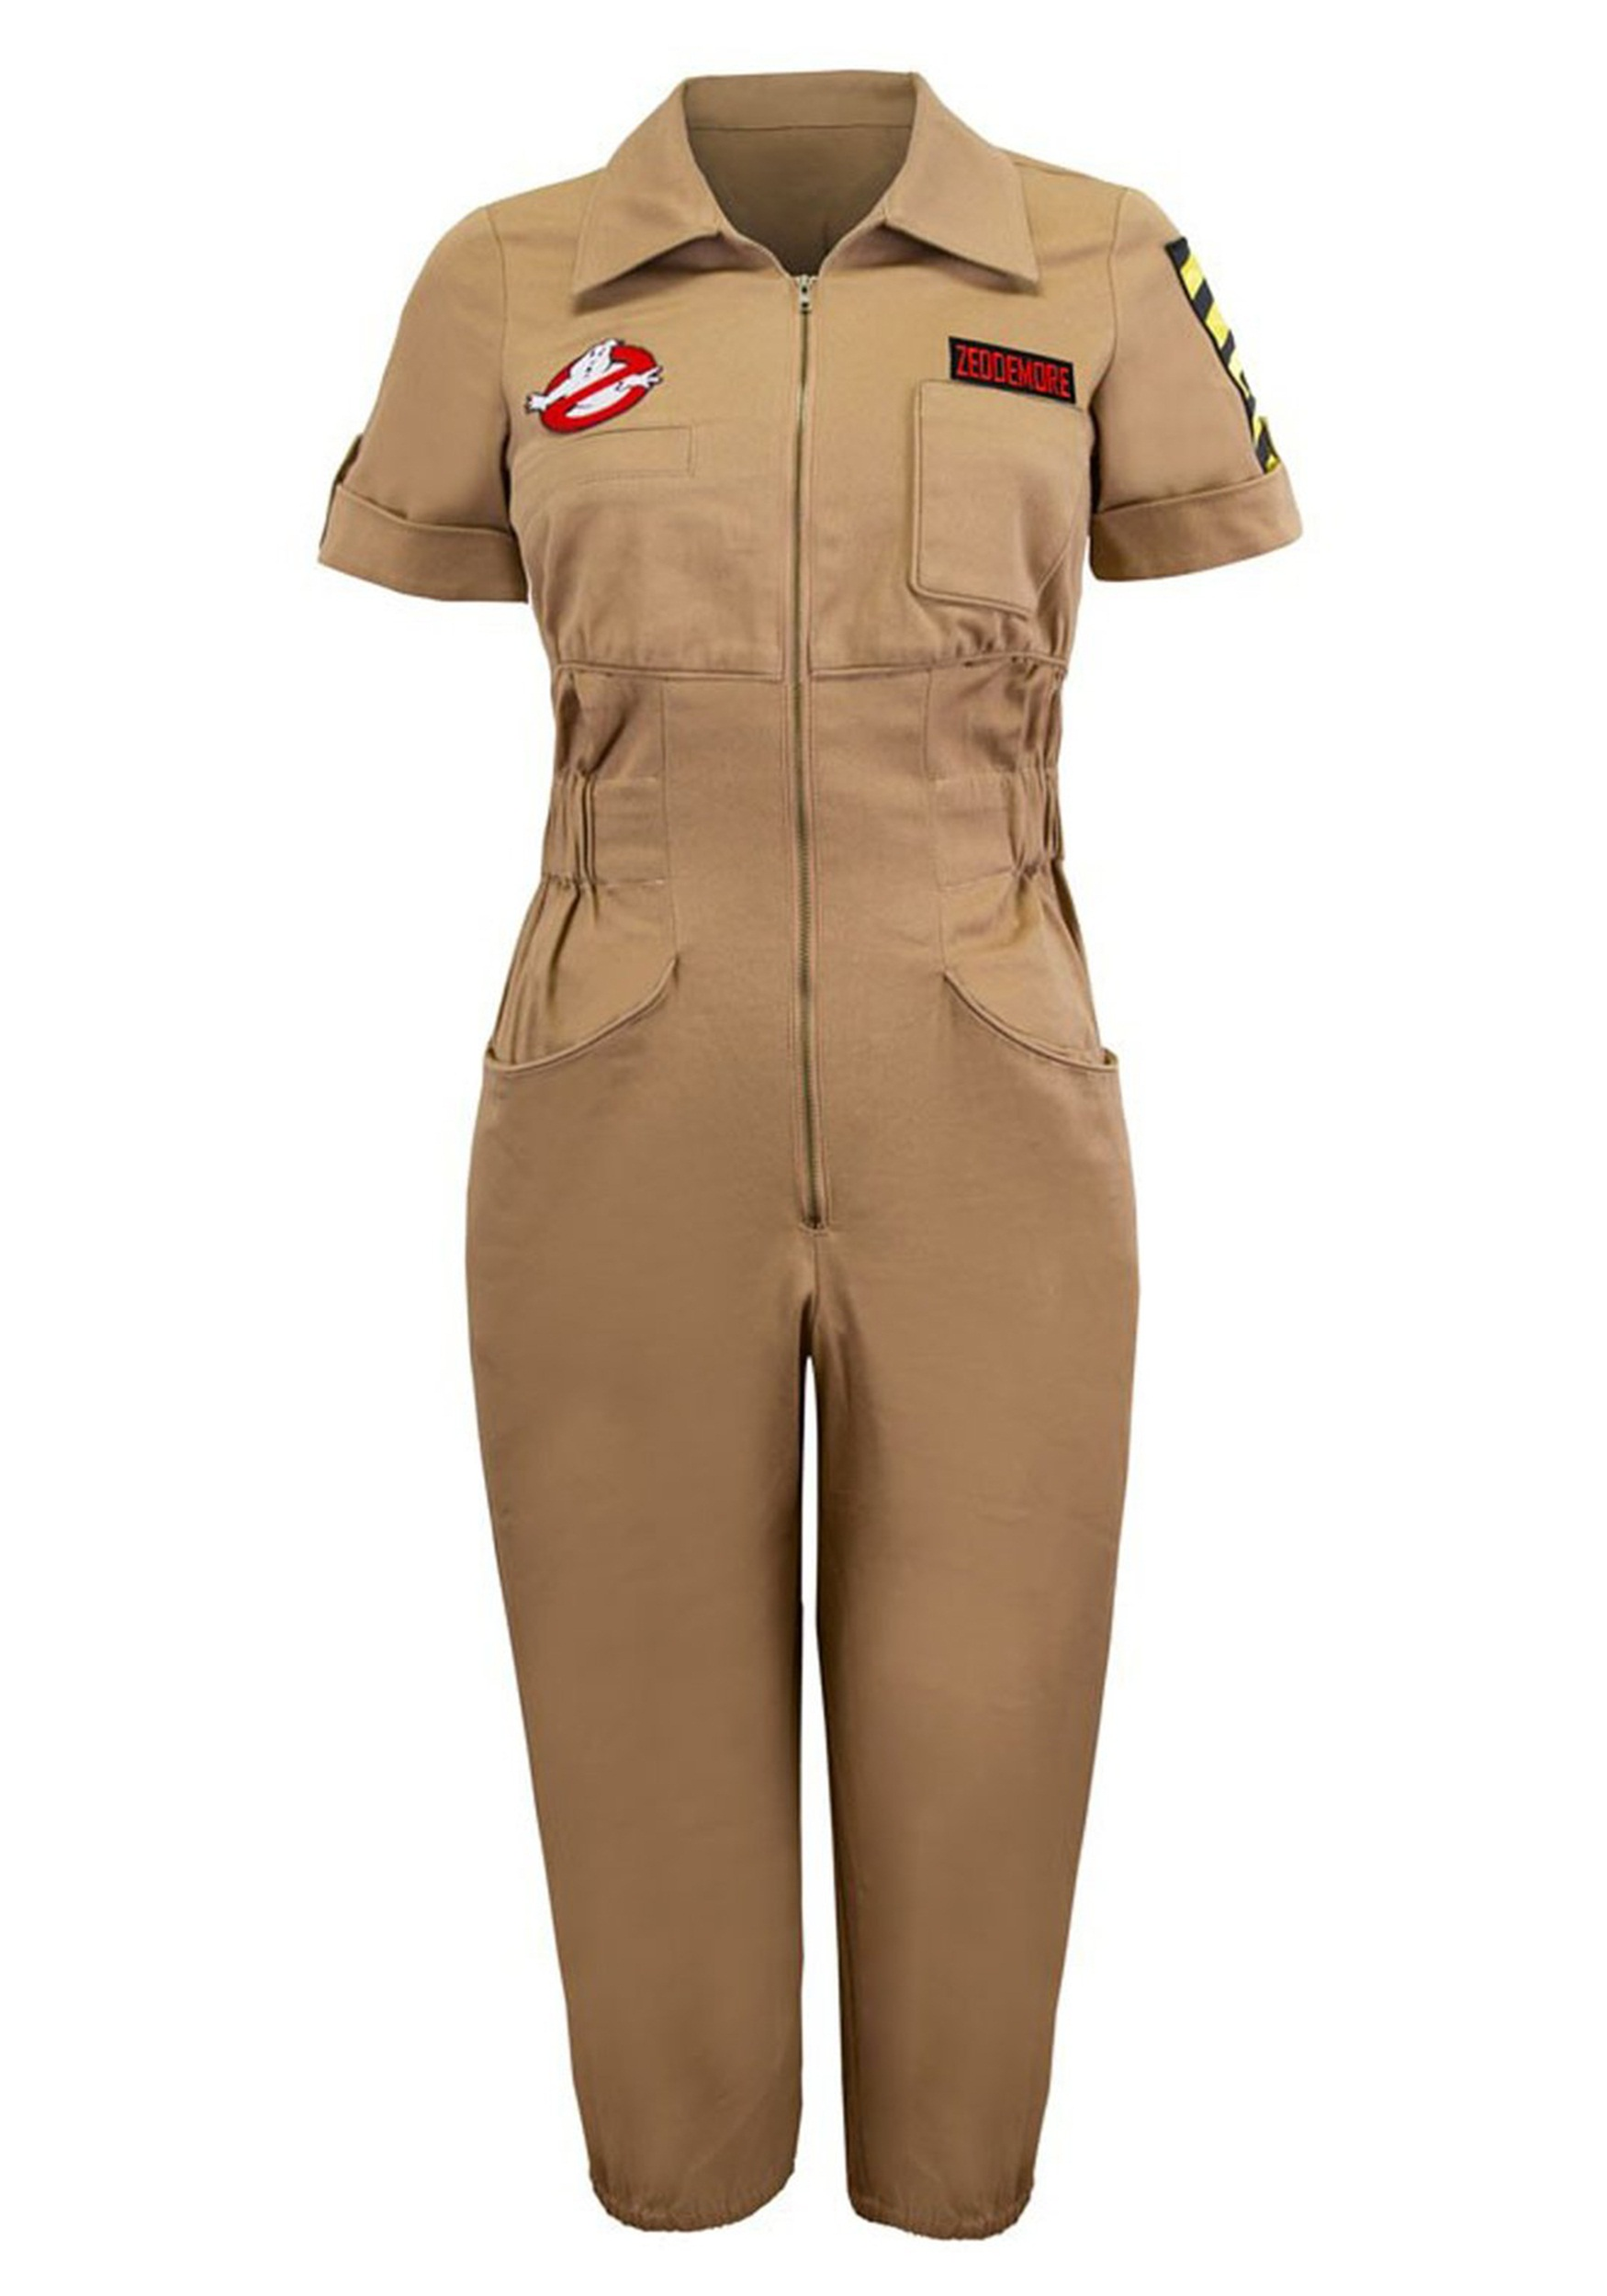 Image of Womens Ghostbusters Venkman Romper Costume